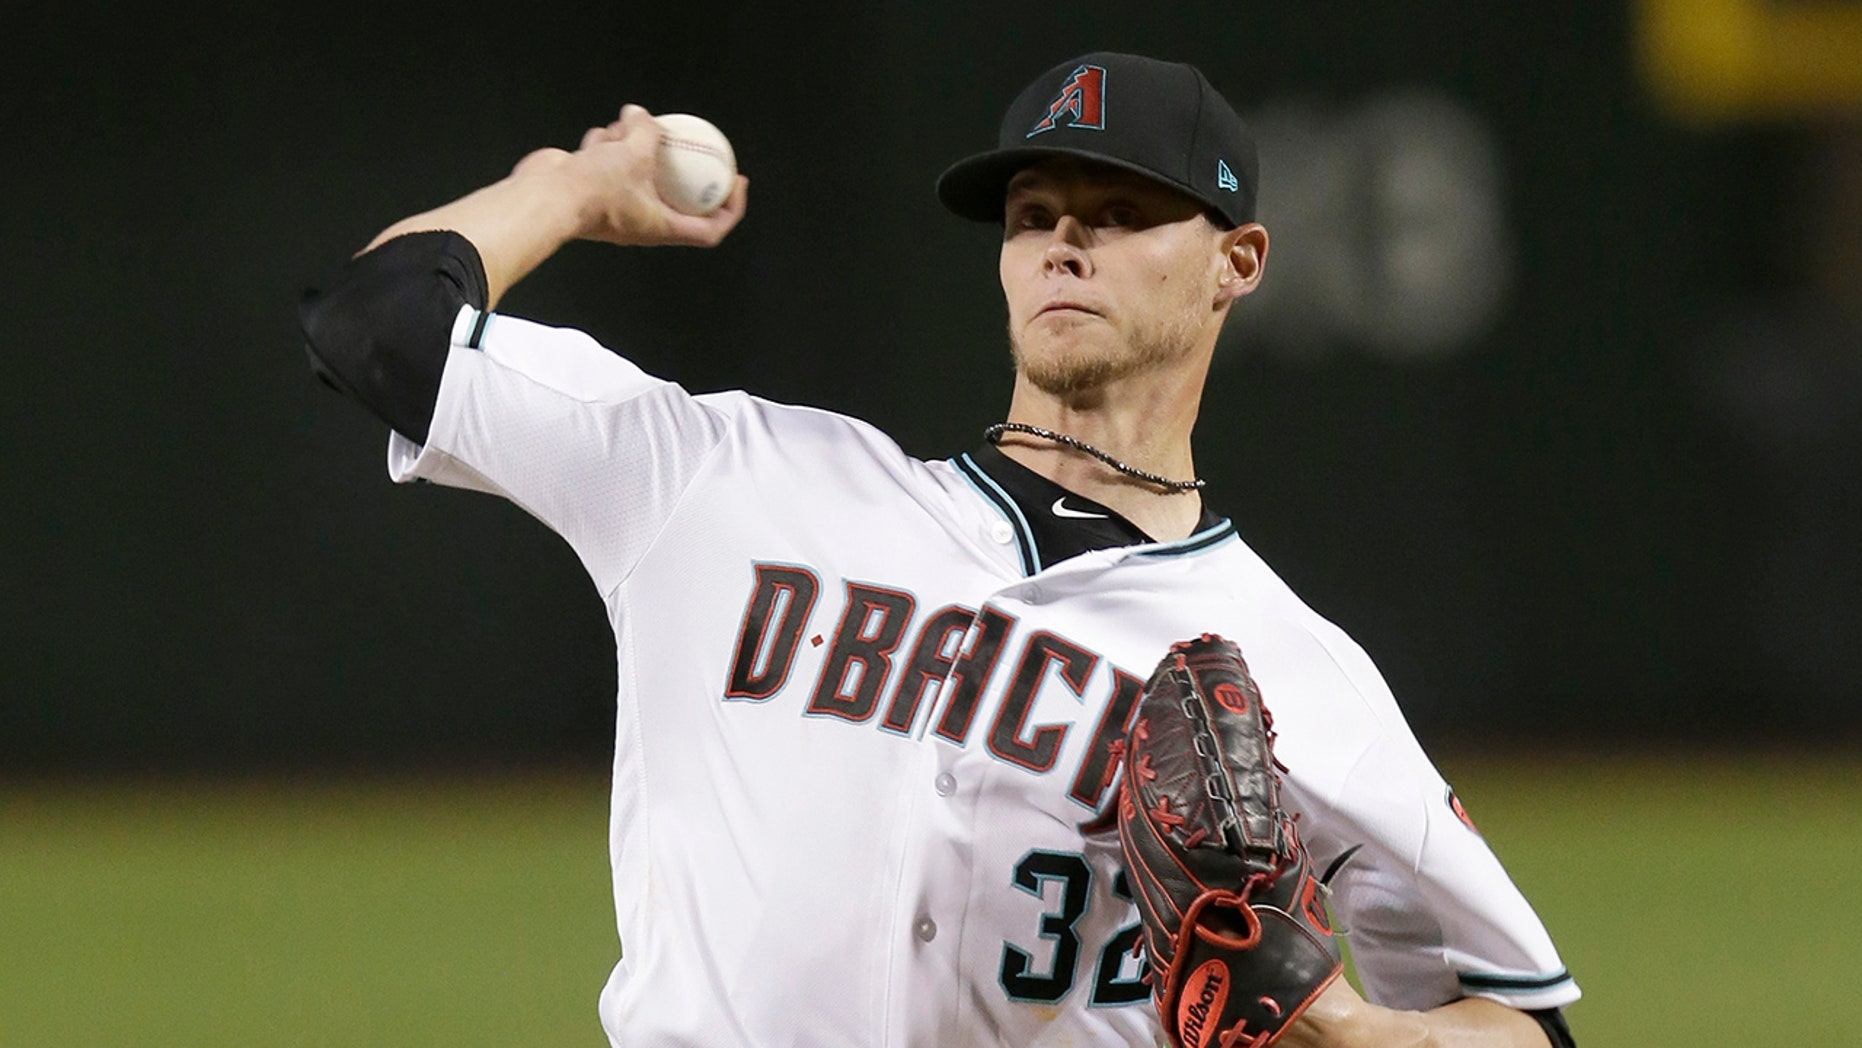 Arizona Diamondbacks pitcher Clay Buchholz throws during the first inning of the team's baseball game against the Pittsburgh Pirates.